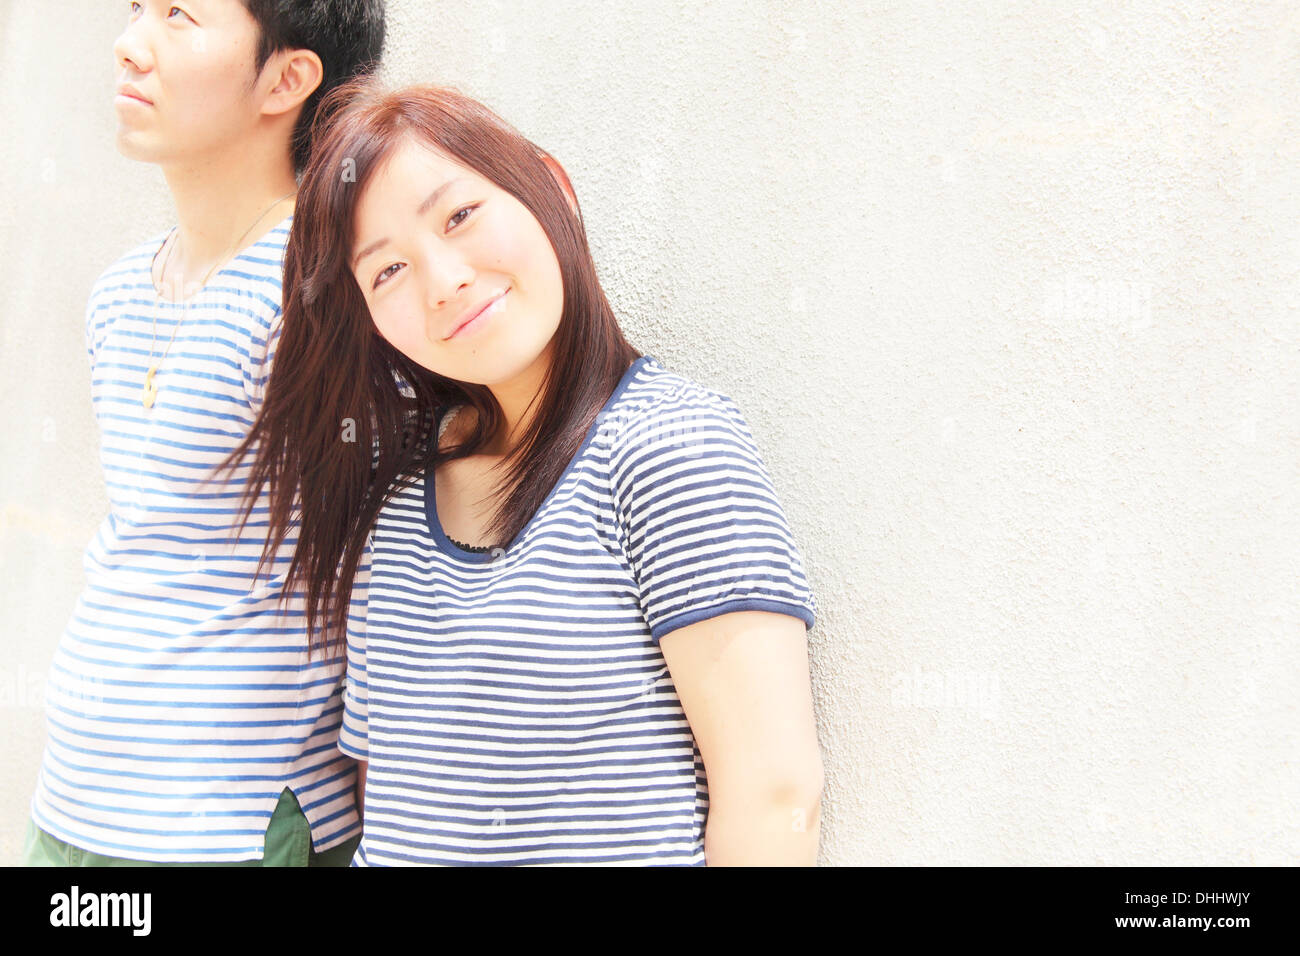 Portrait of young couple wearing striped top garments - Stock Image